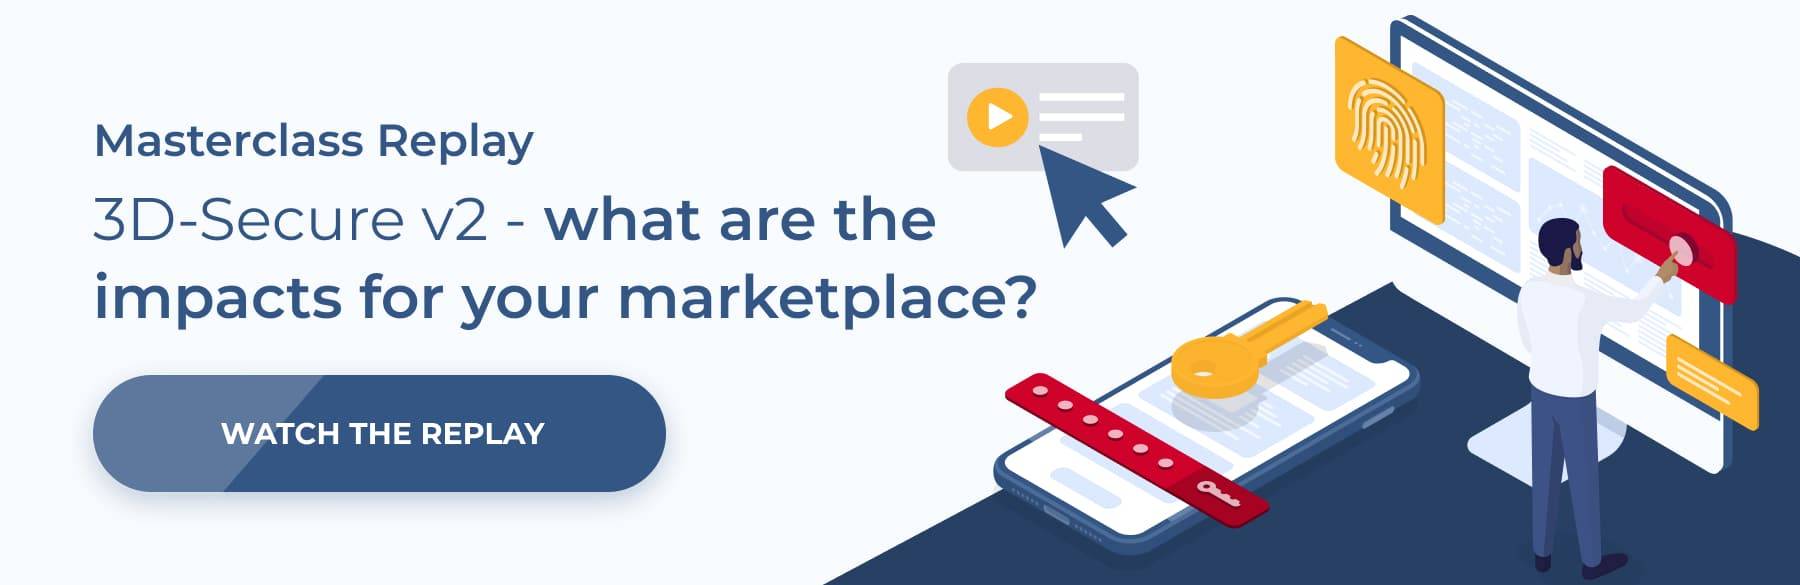 3D-Secure v2 - what are the impacts for your marketplace?